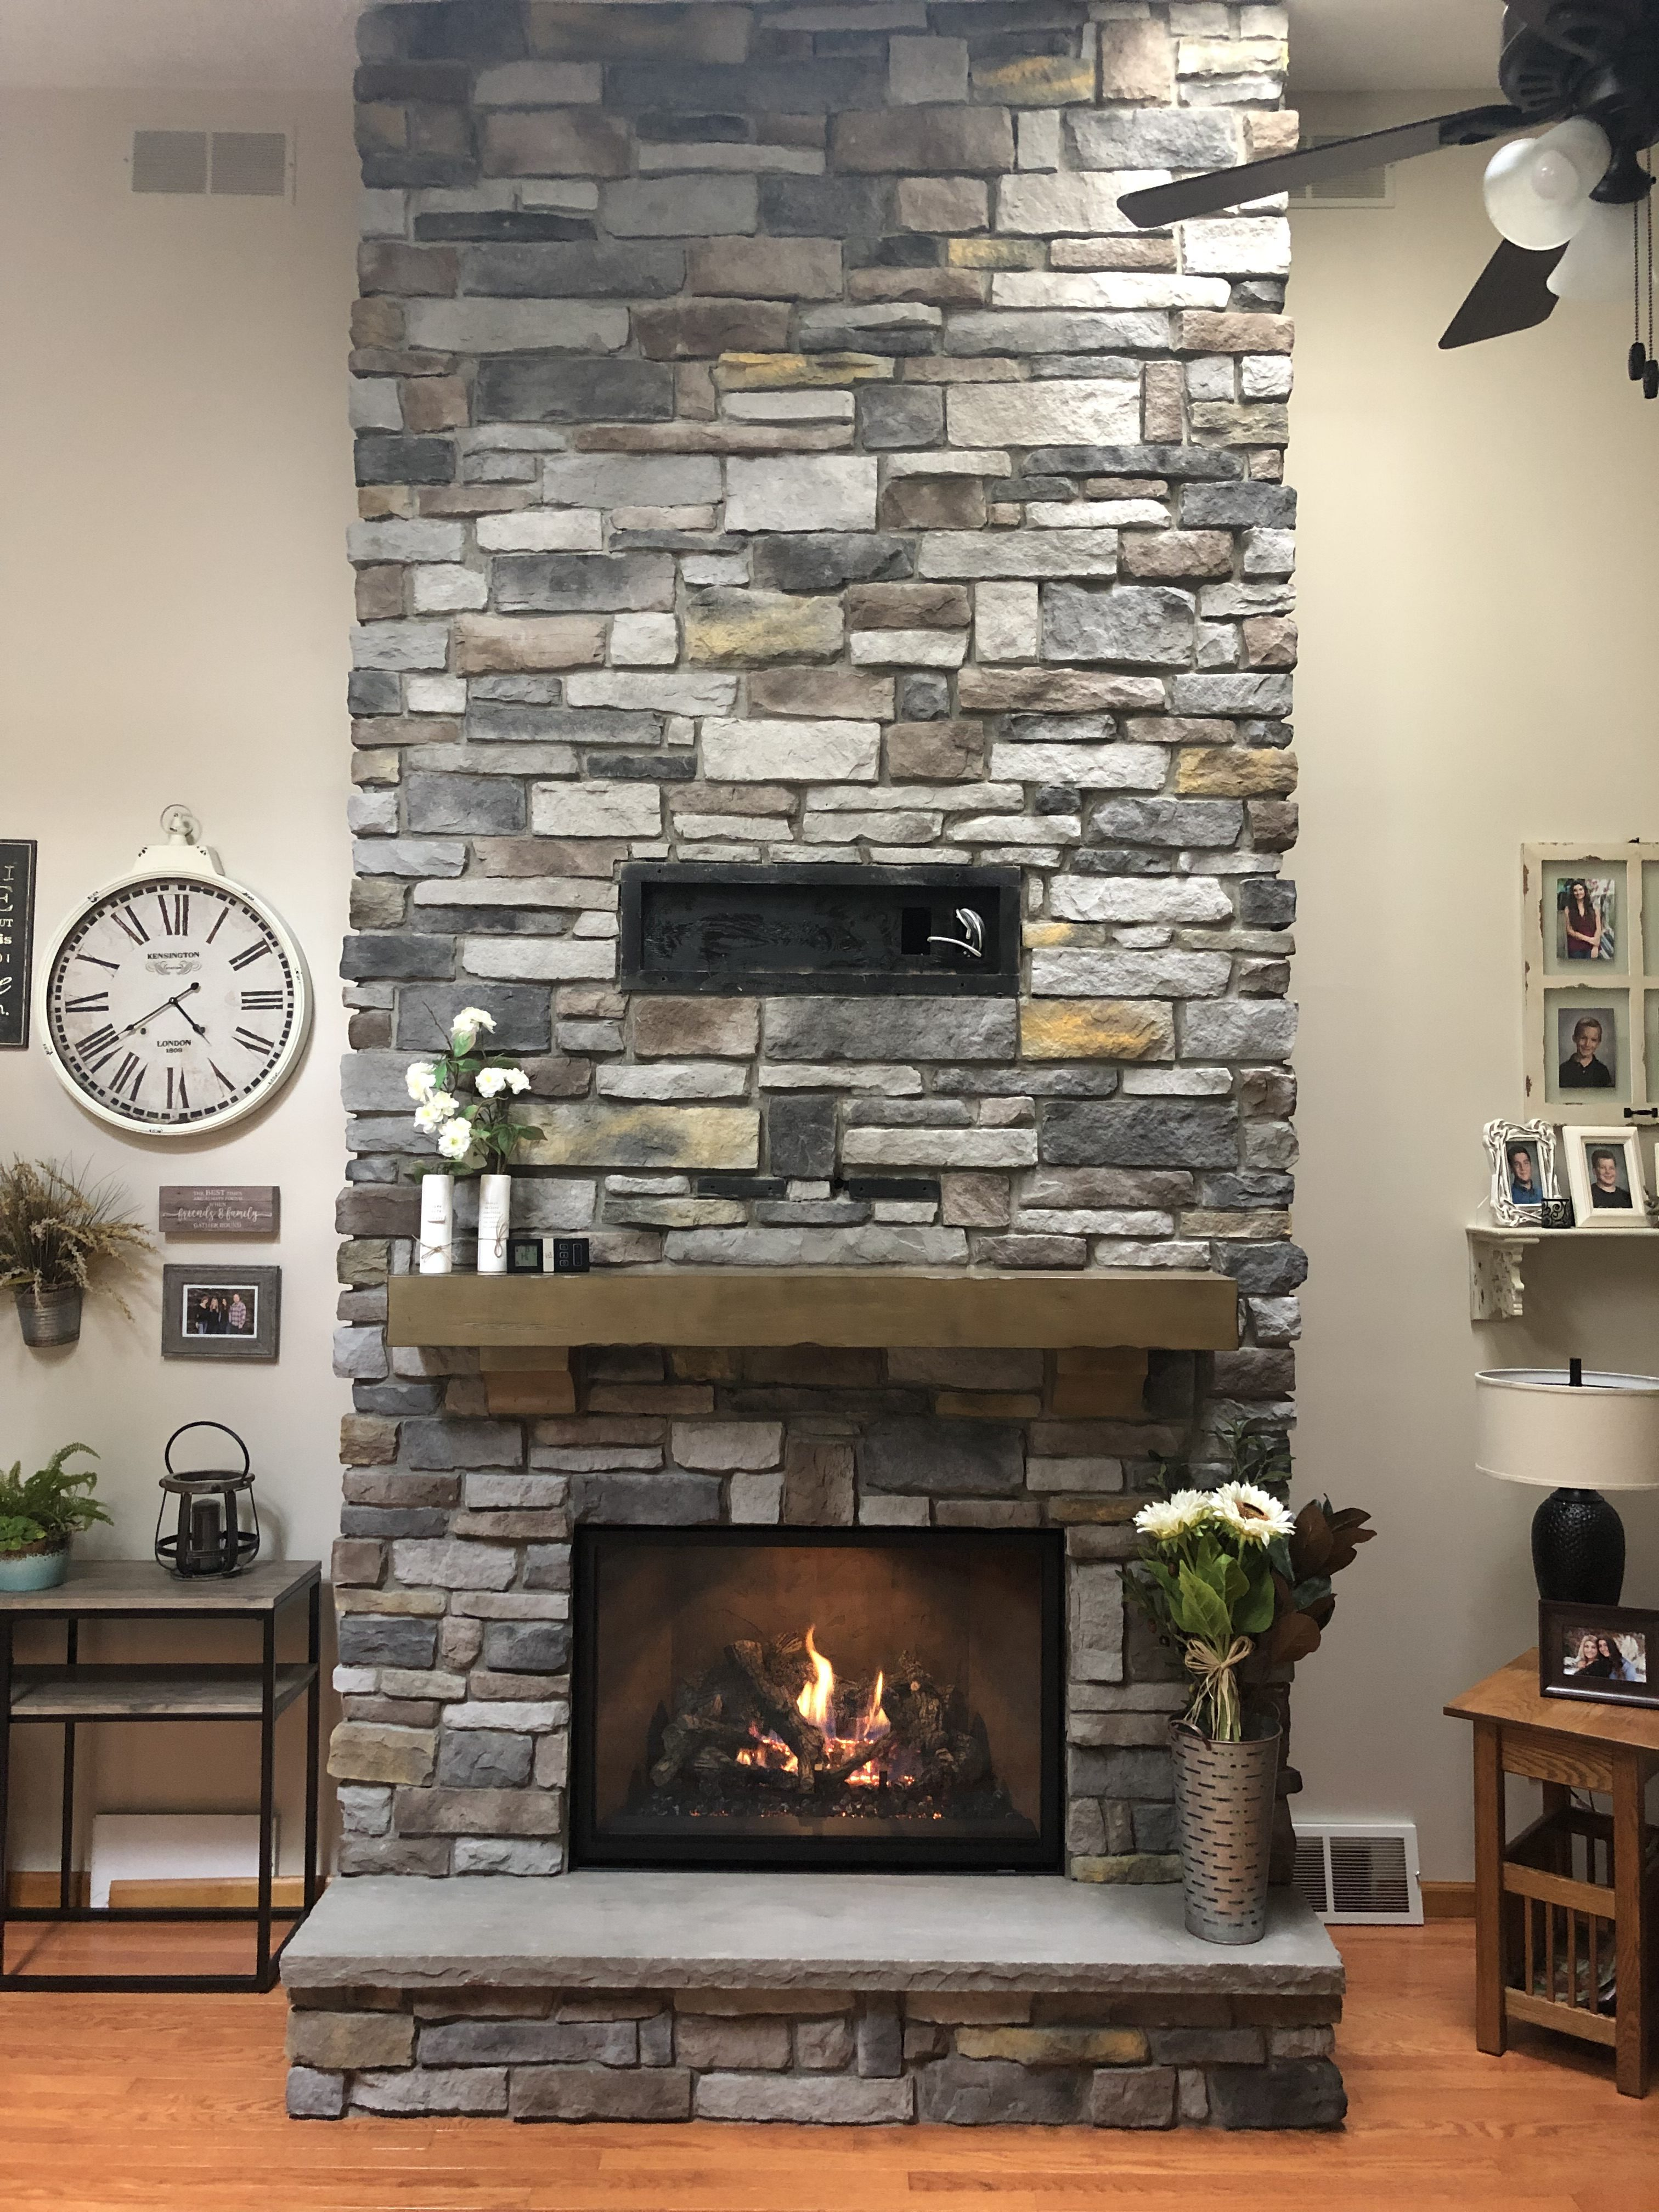 Image of a 864TRV 31KCF Gas fireplace by Travis Industries featuring Stucco interior and stone facing.